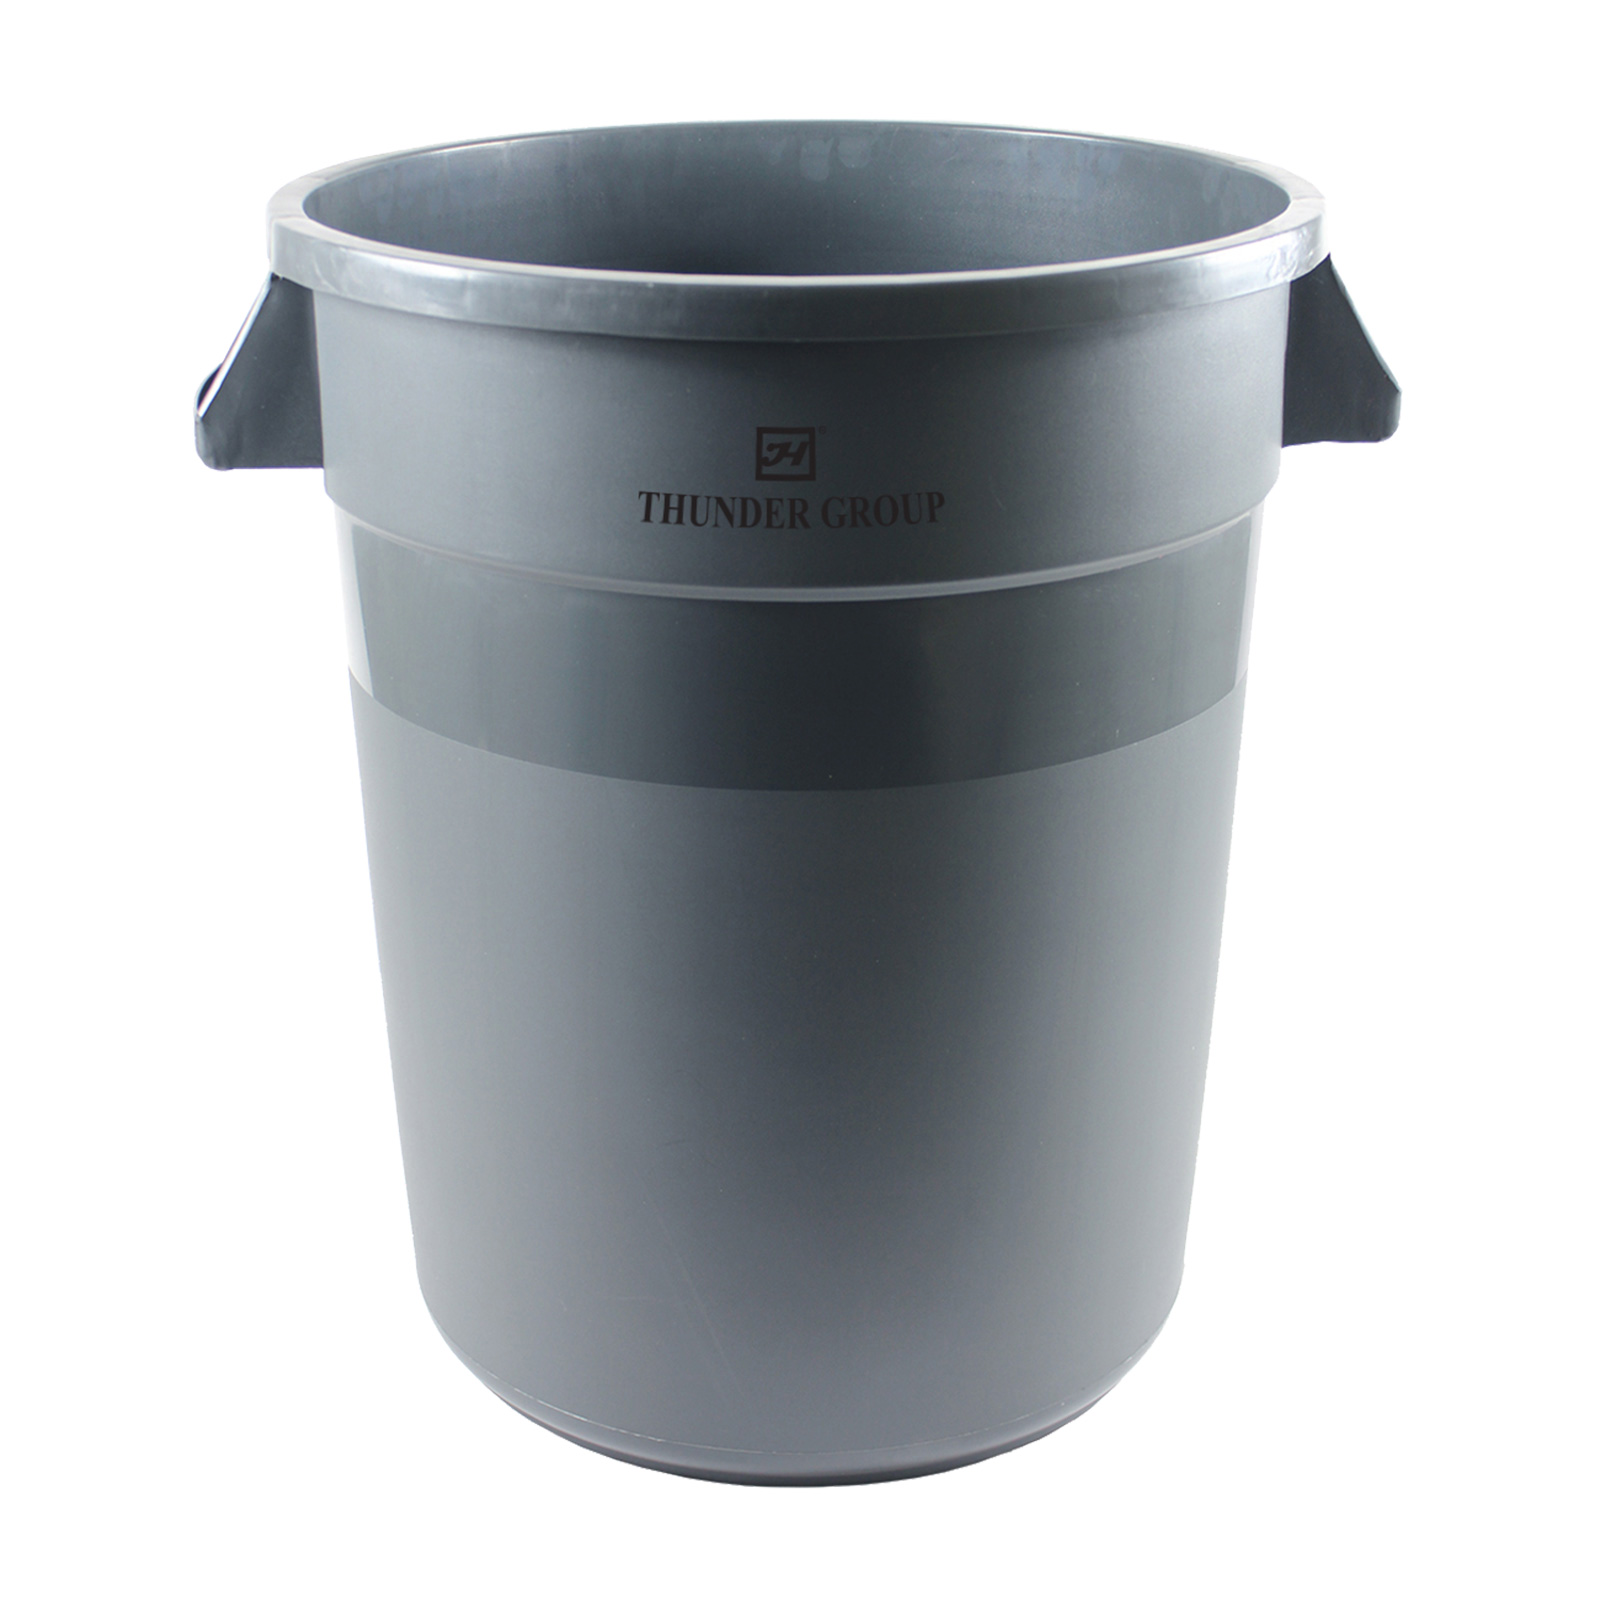 Thunder Group PLTC032G trash can / container, commercial